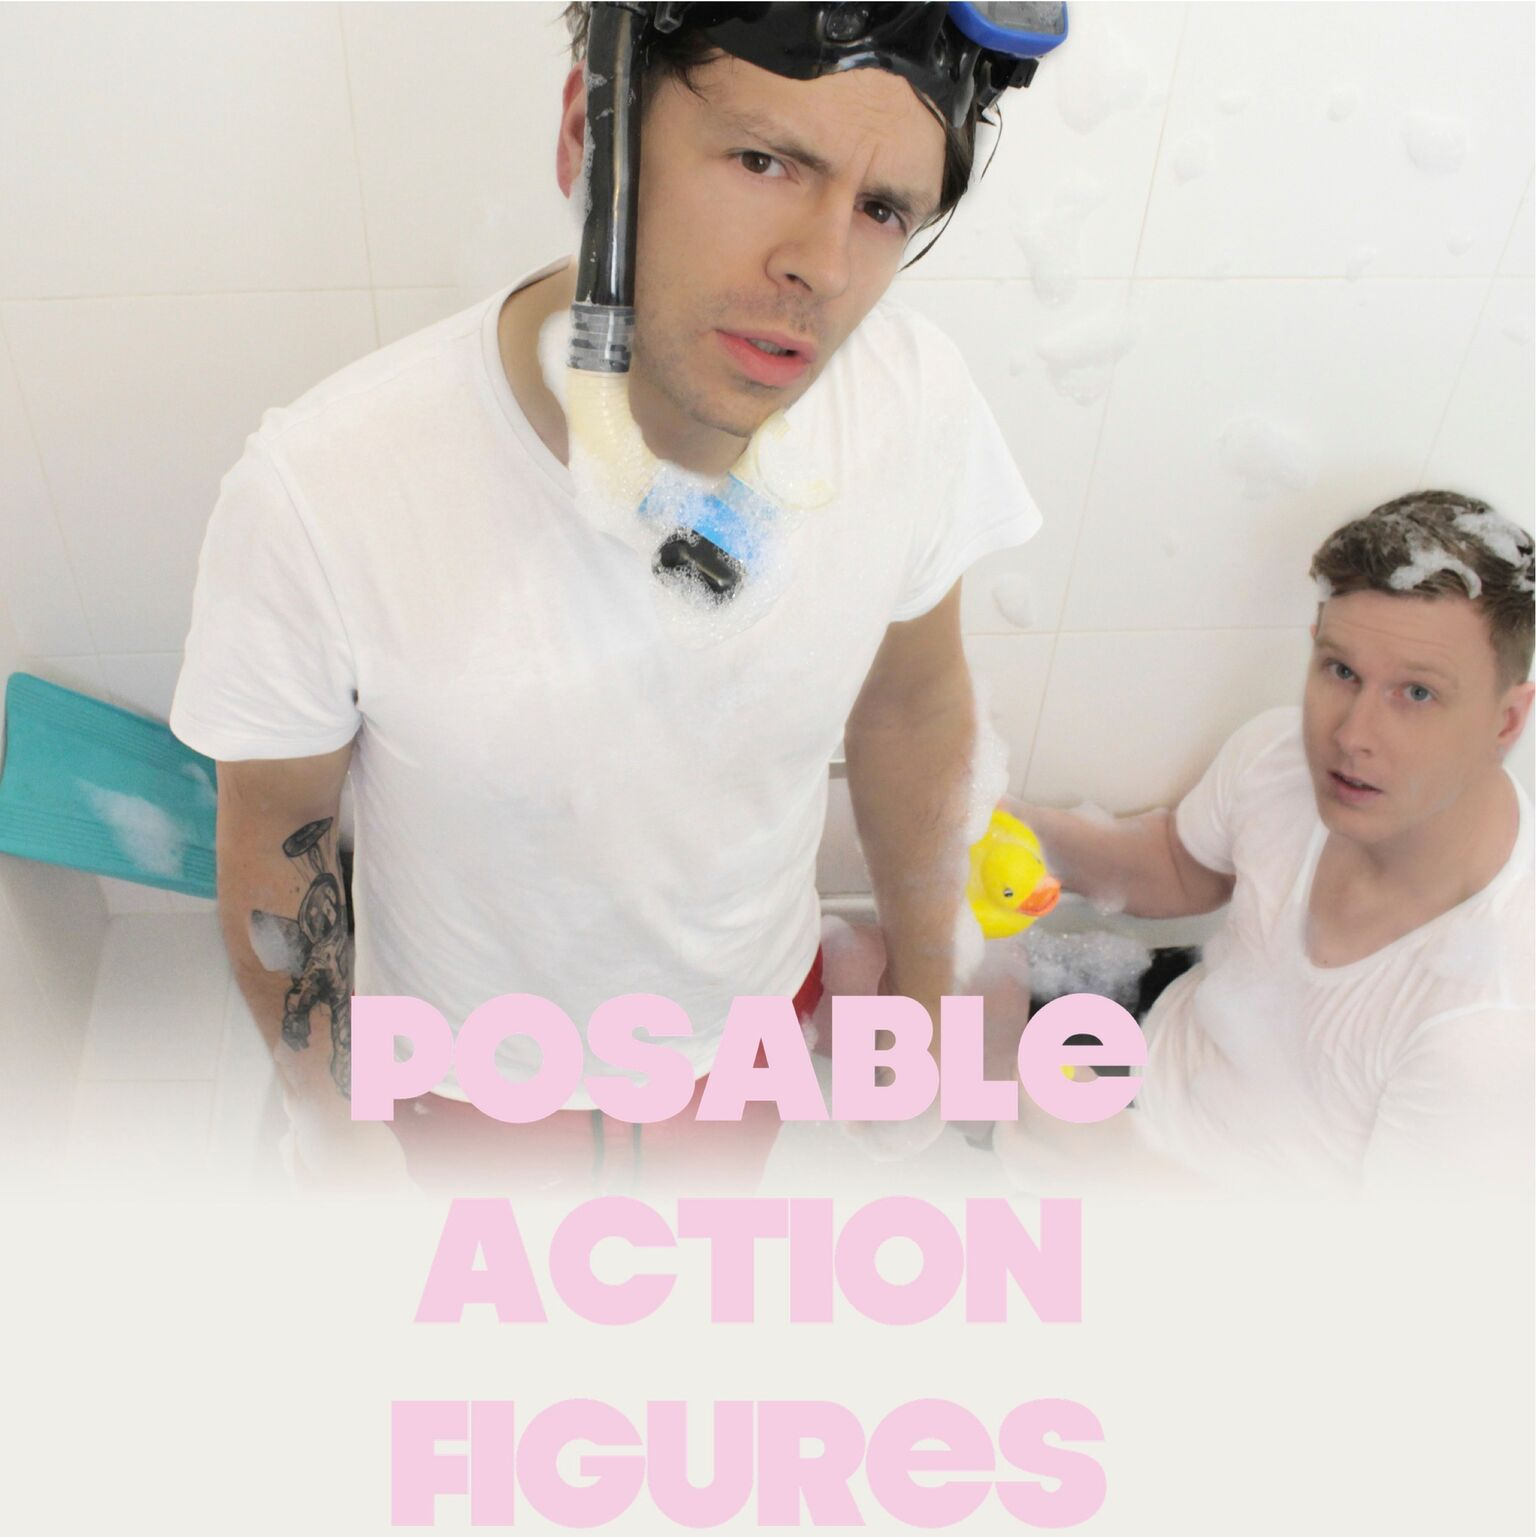 Posable Action Figures